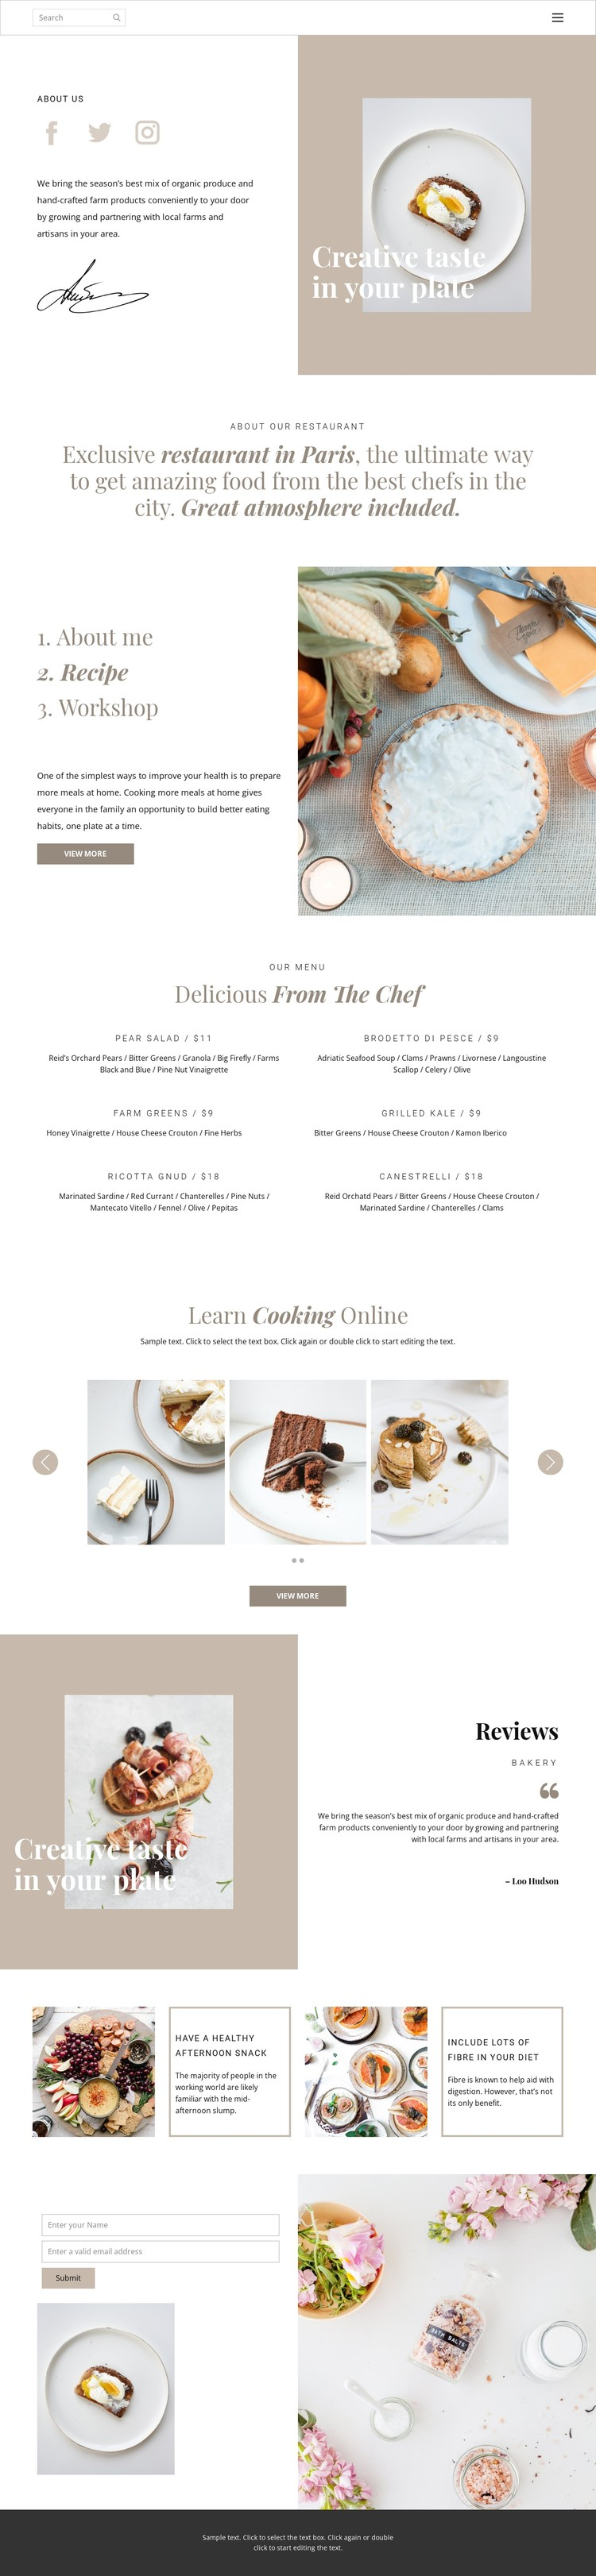 Creative taste in plate CSS Template